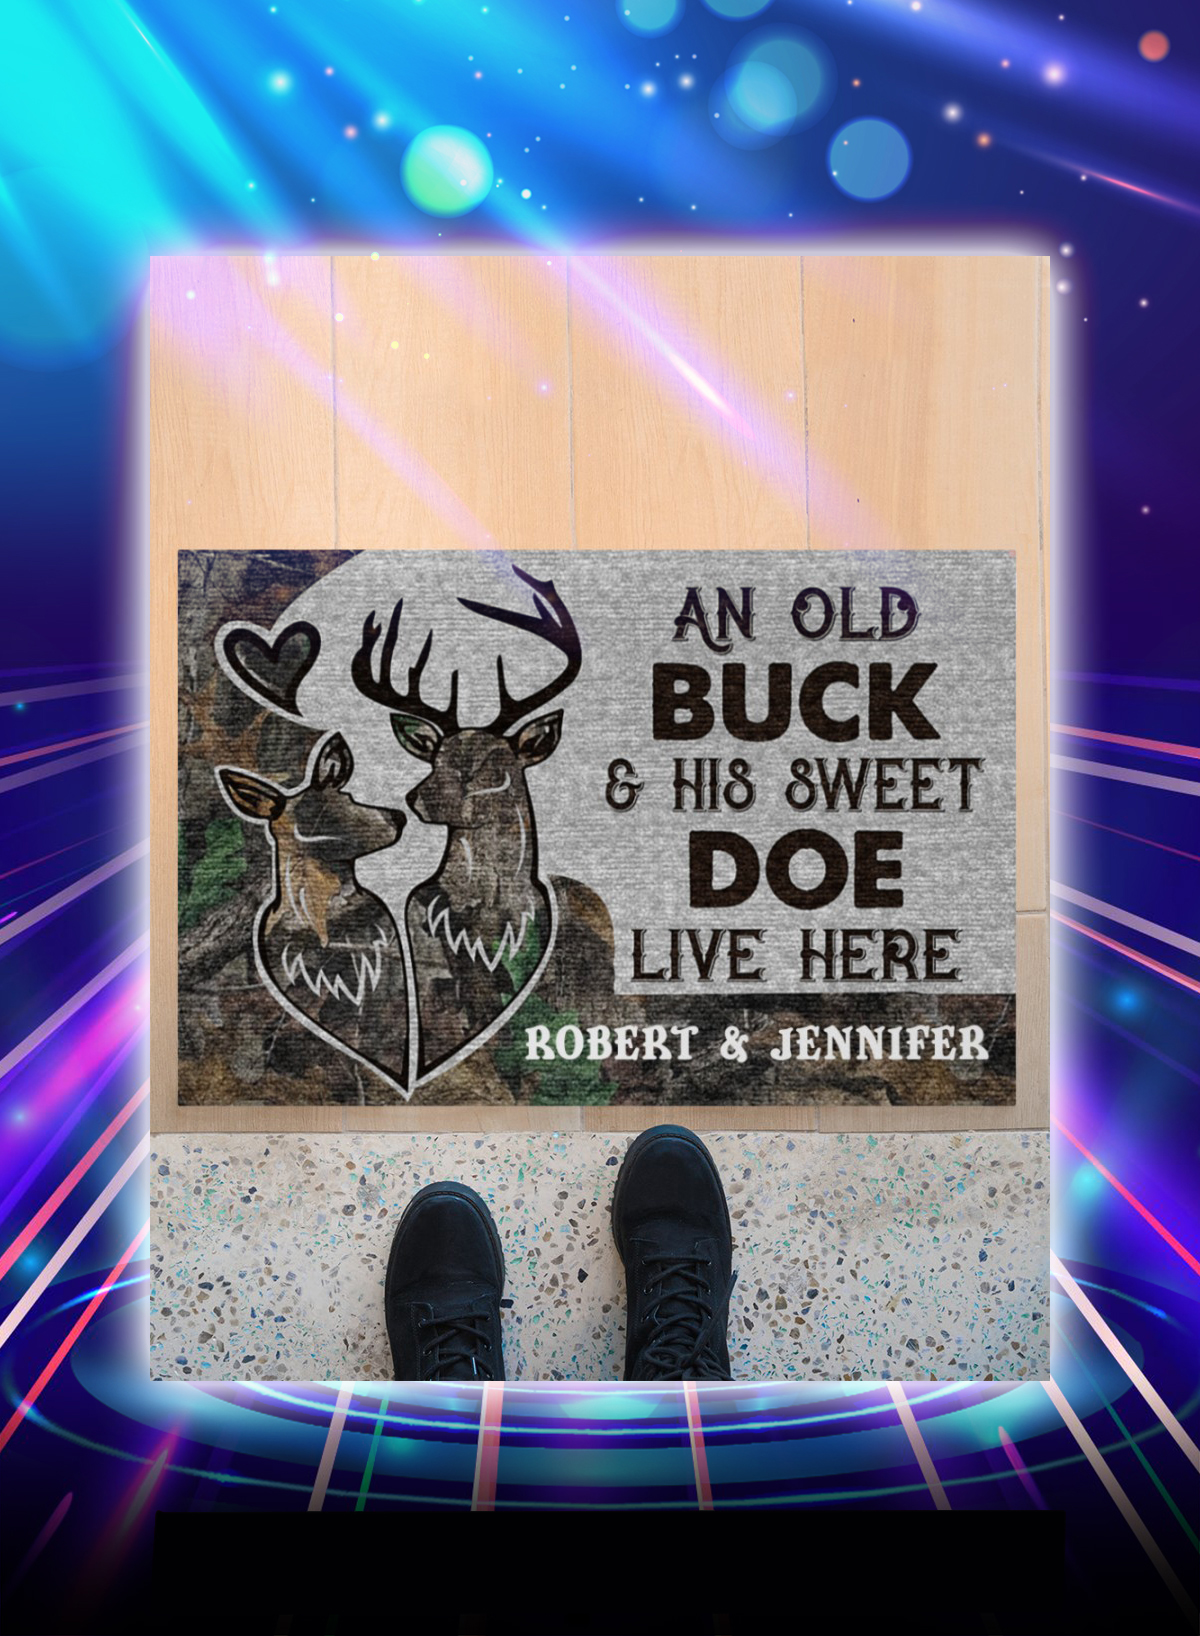 Personalized custom name An old buck and his sweet doe live here doormat - Picture 1